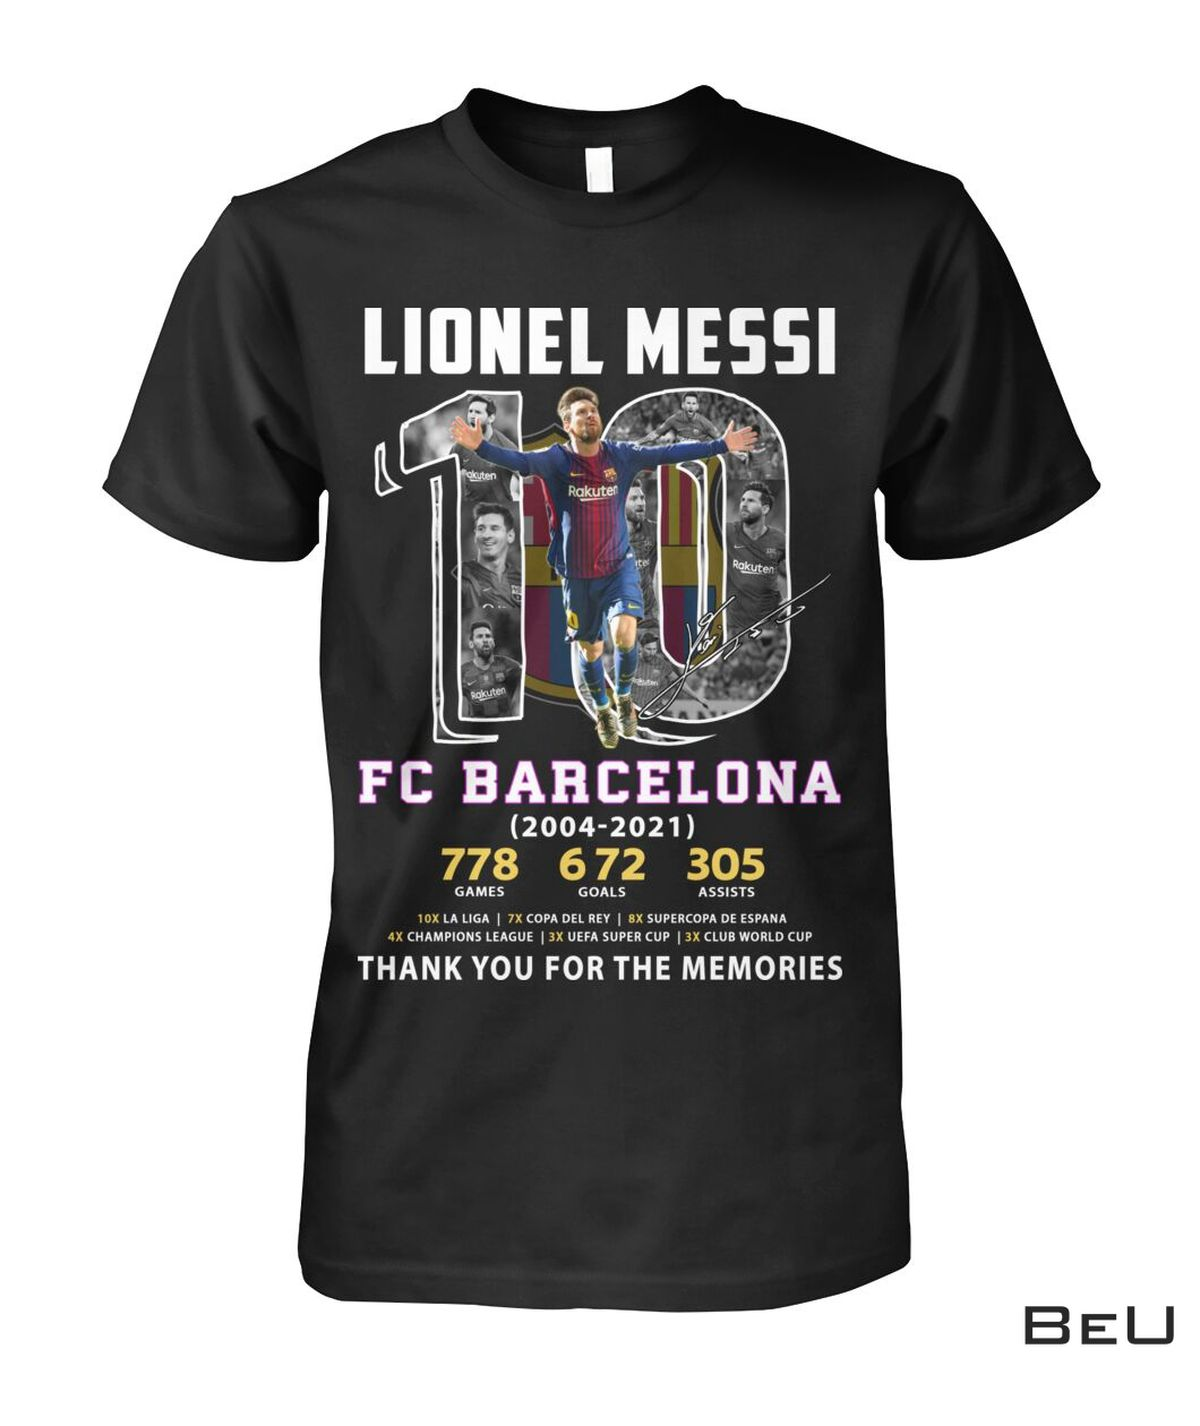 Lionel Messi 10 Fc Barcelona Thank You Shirt, hoodie, tank top